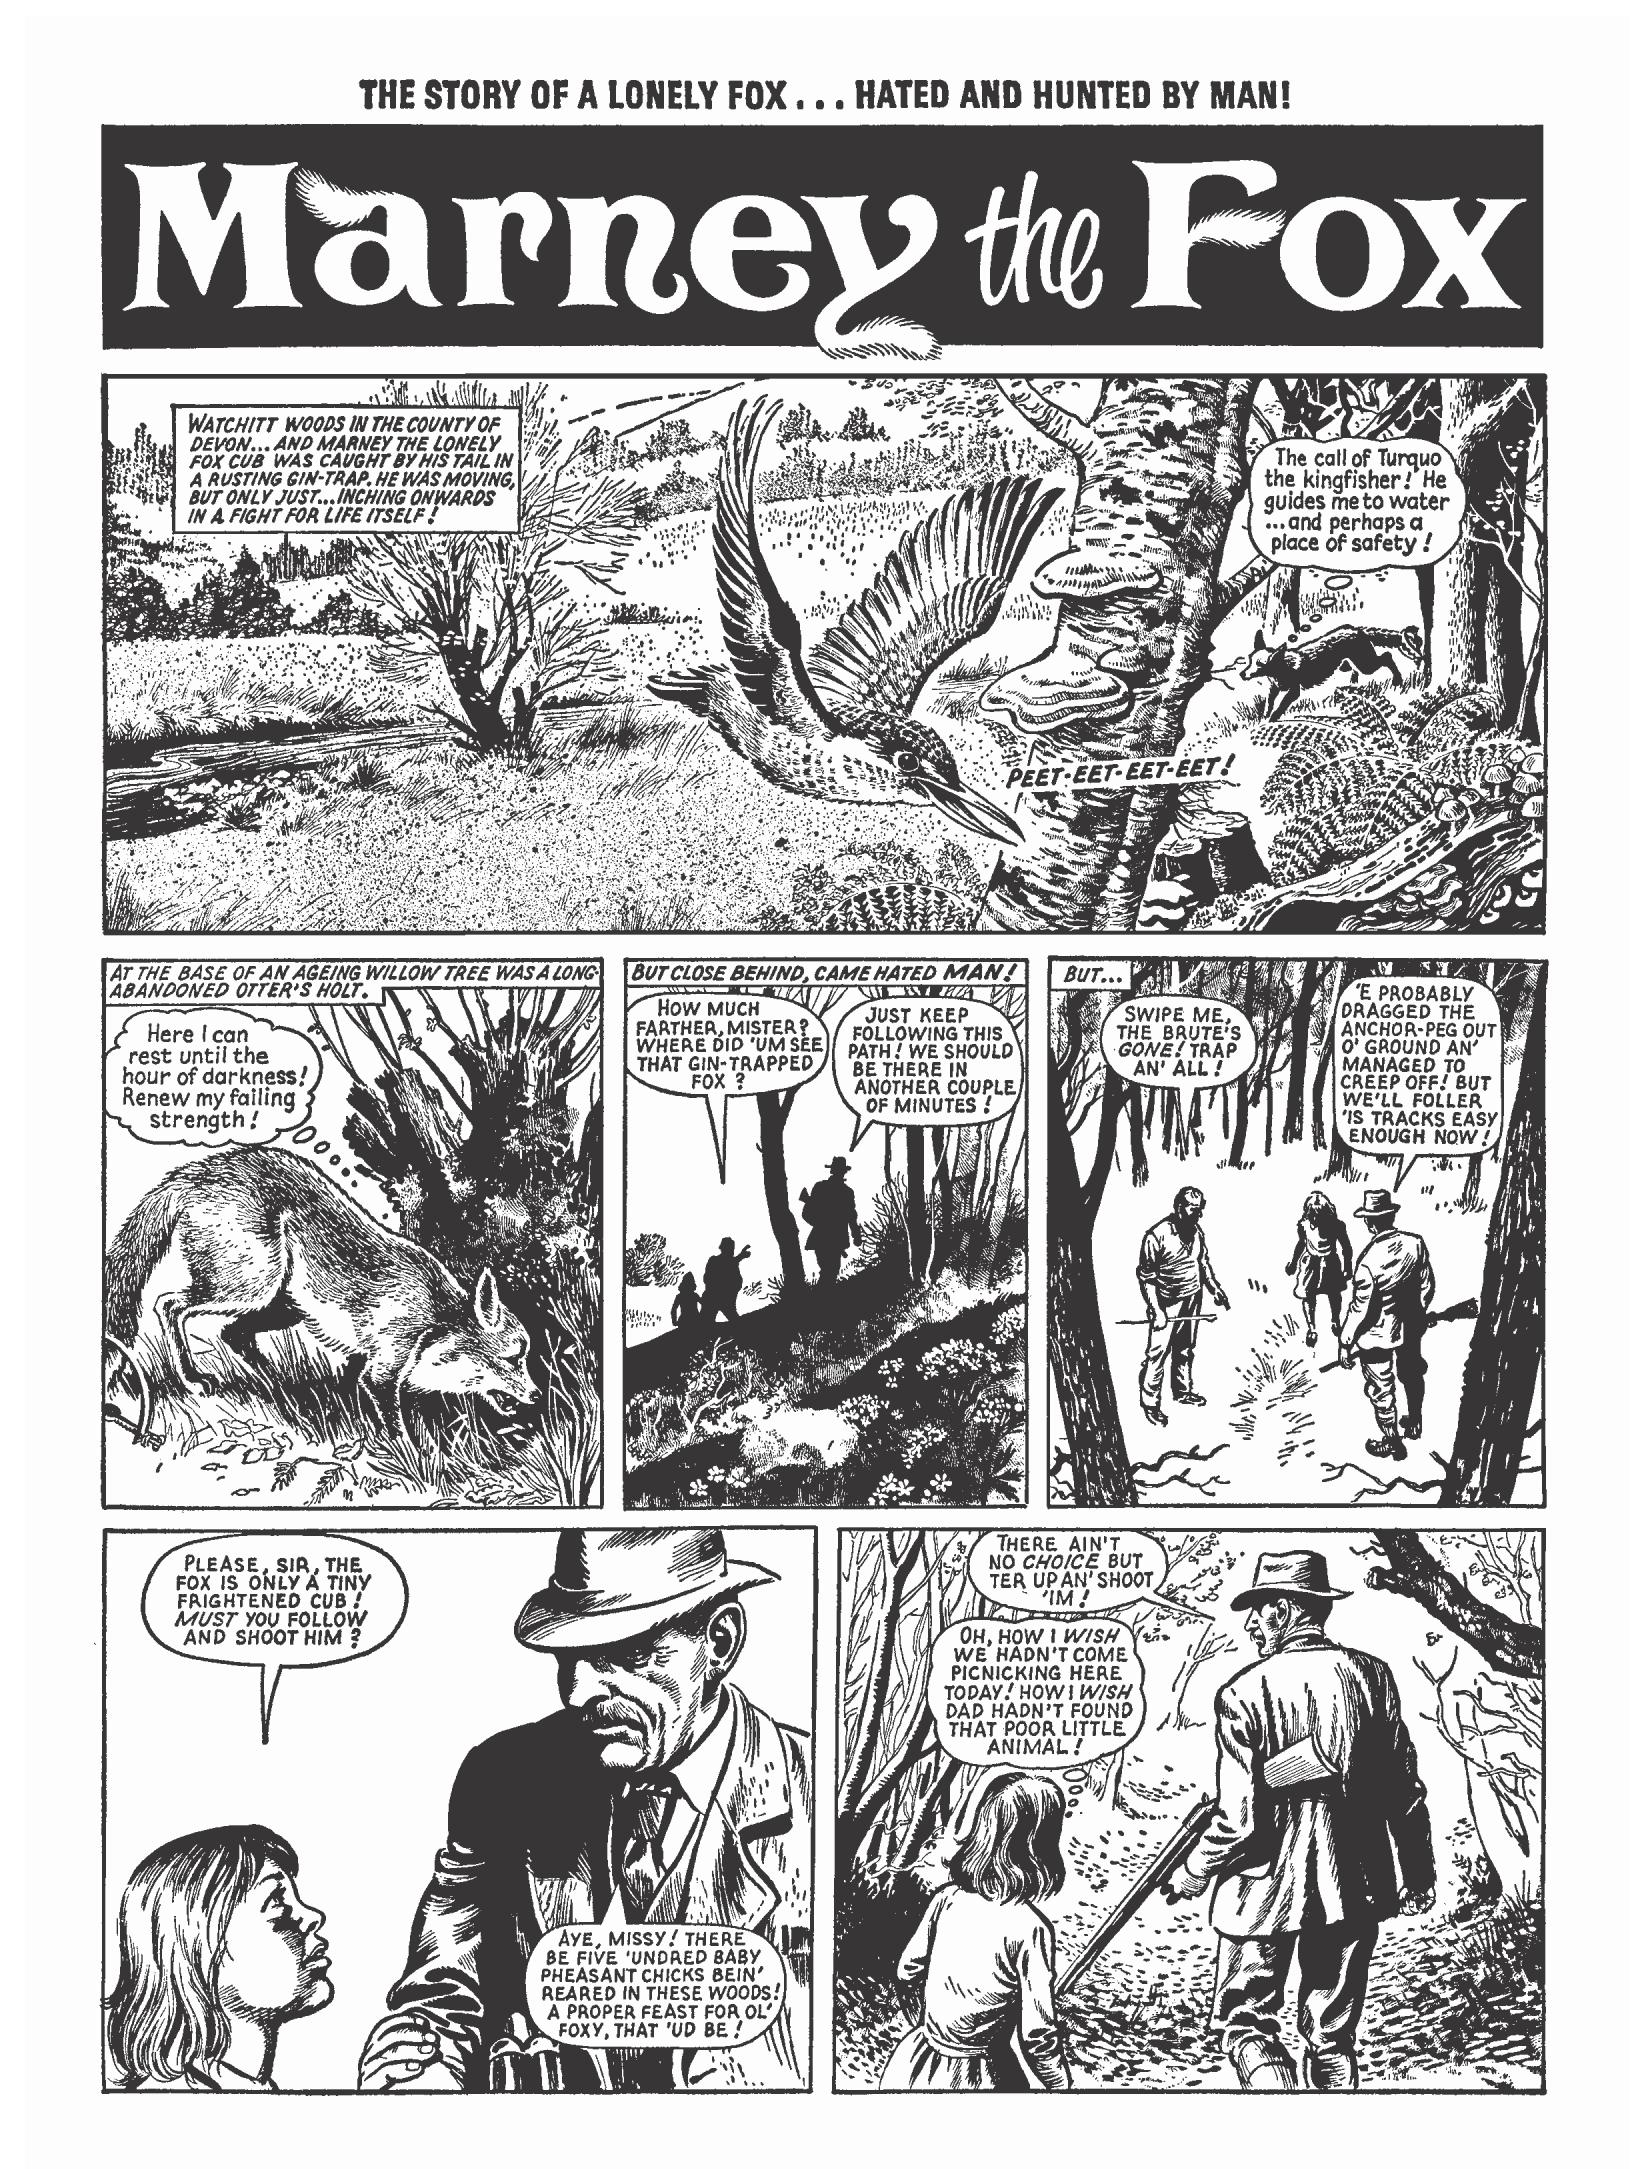 Marney the Fox review